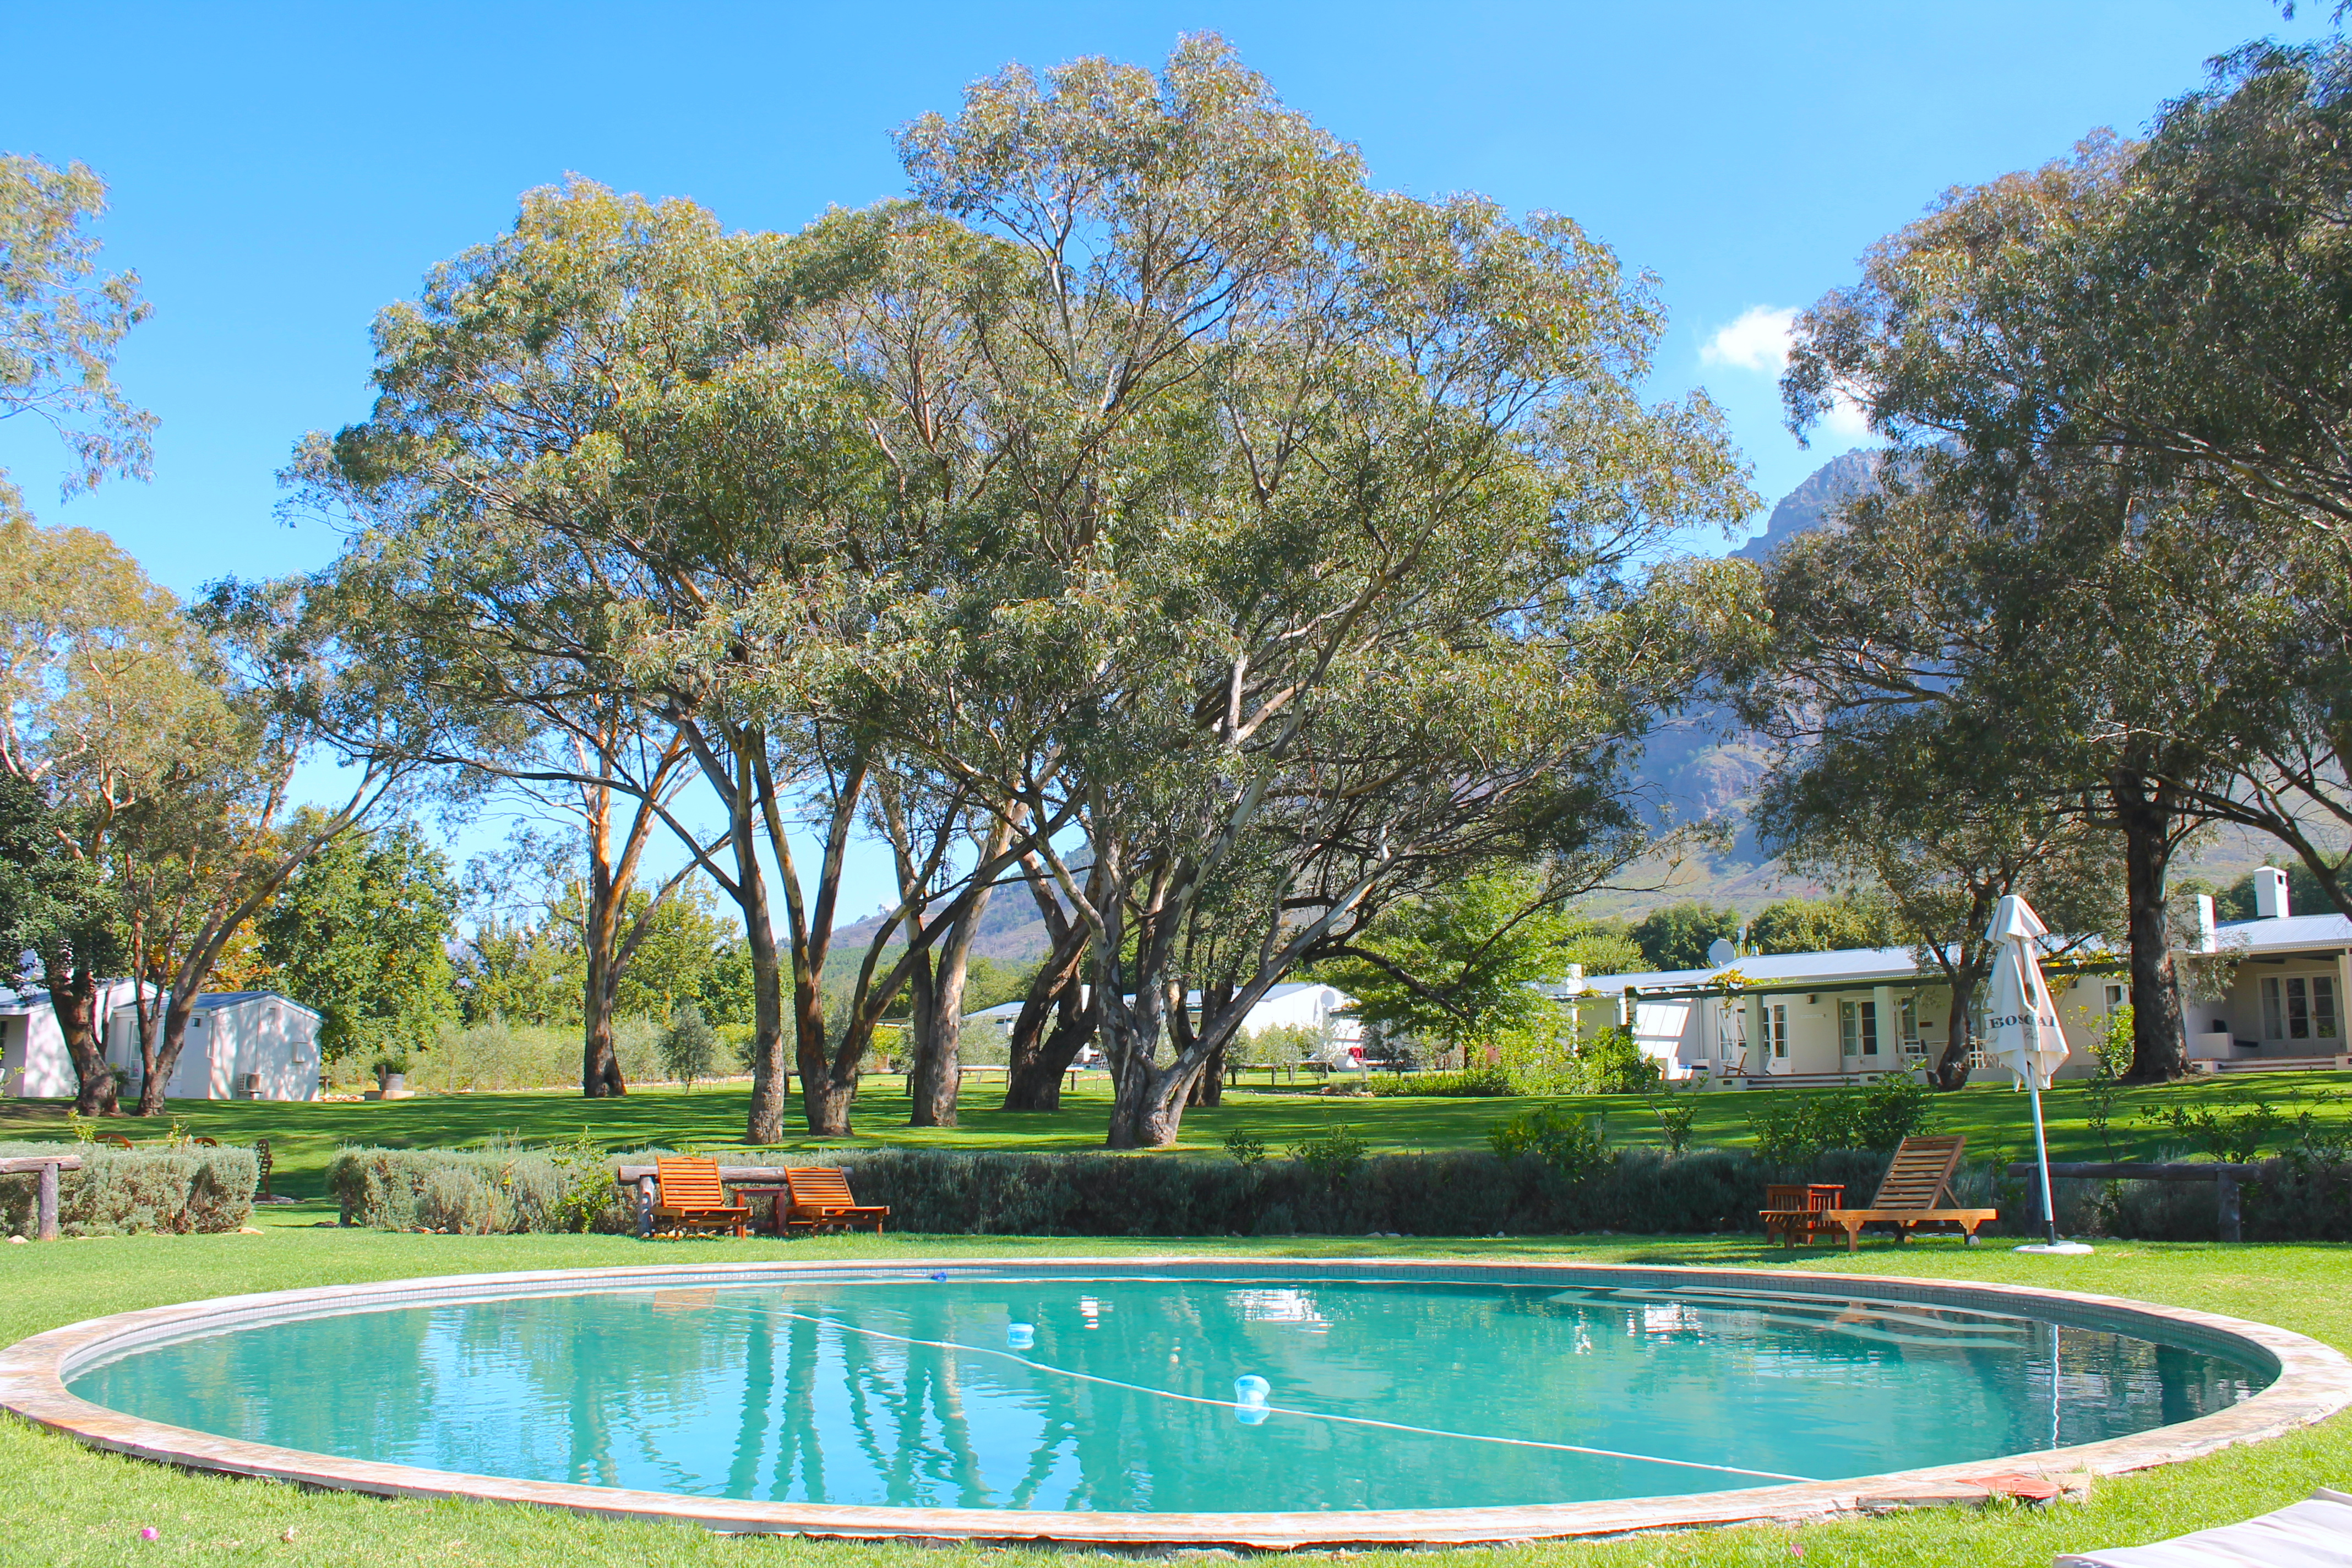 orchard-cottage-pool-boschendal-southafrica-lustforthesublime